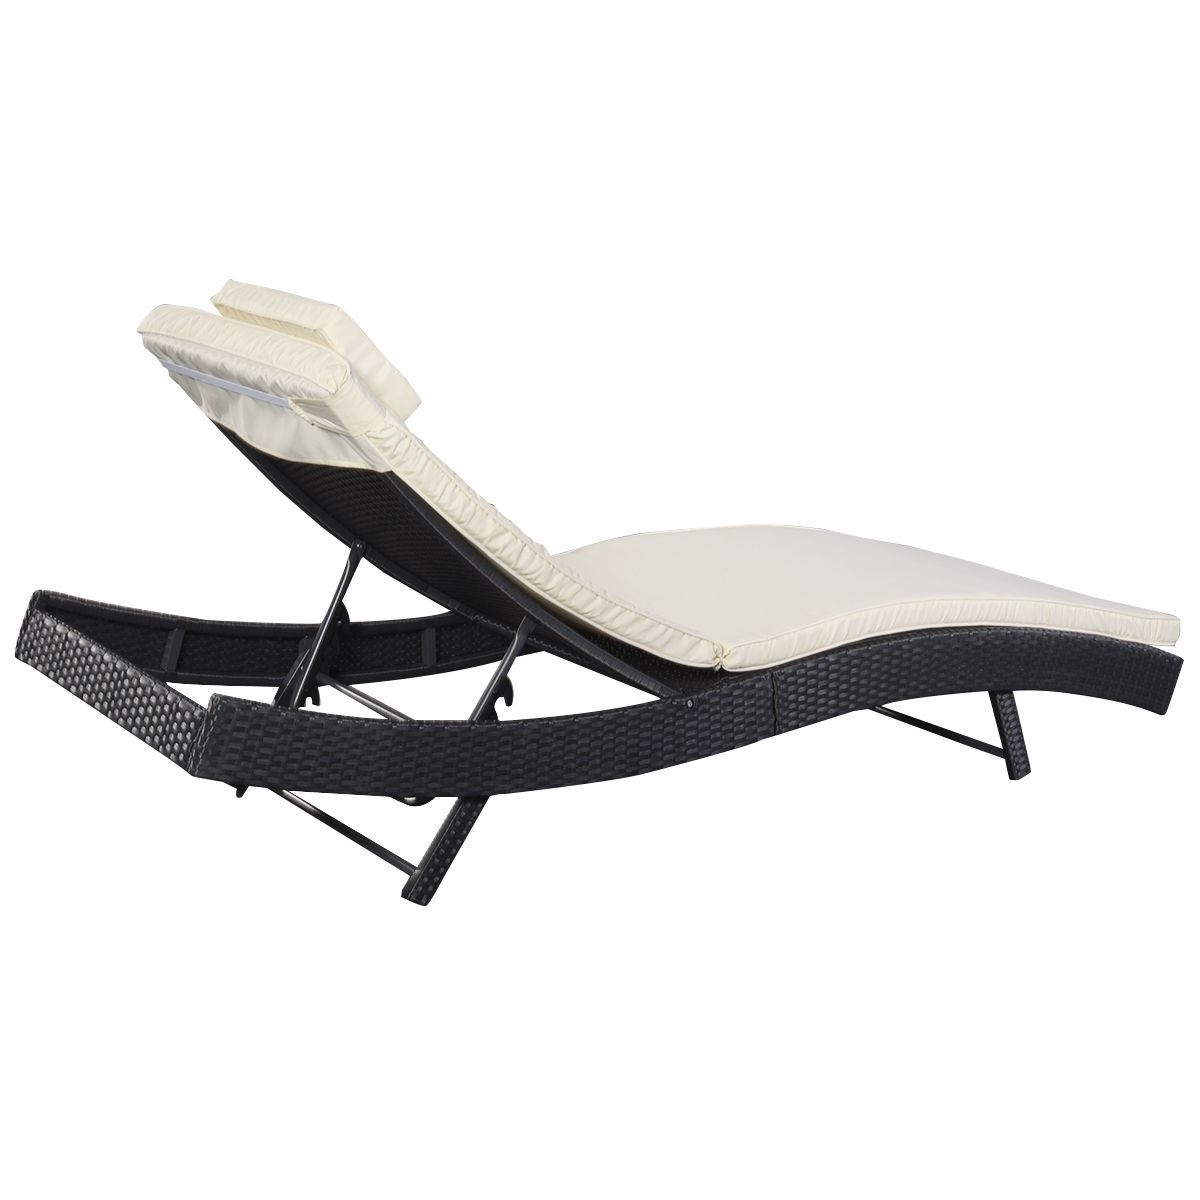 Preferred Vinyl Chaise Lounge Chairs Intended For Outdoor : Target Lounge Chairs Vinyl Strap Chaise Lounge Outdoor (View 4 of 15)